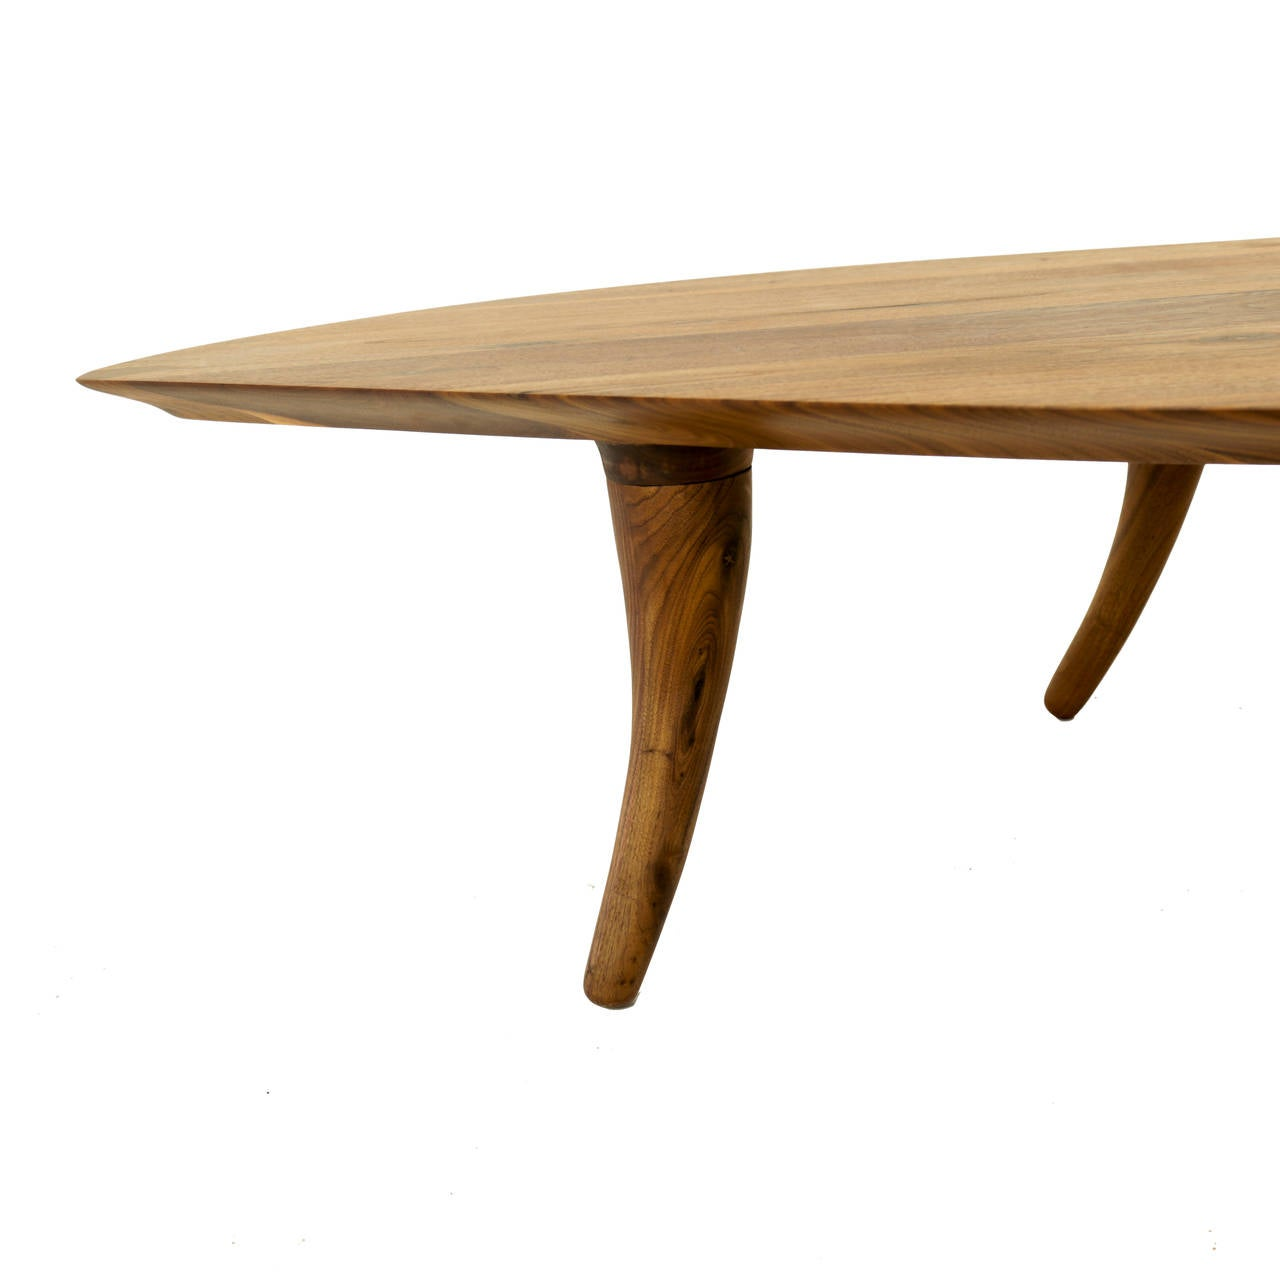 Sculptural Coffee Tables Sculptural Walnut Coffee Table With Curved Legs At 1stdibs